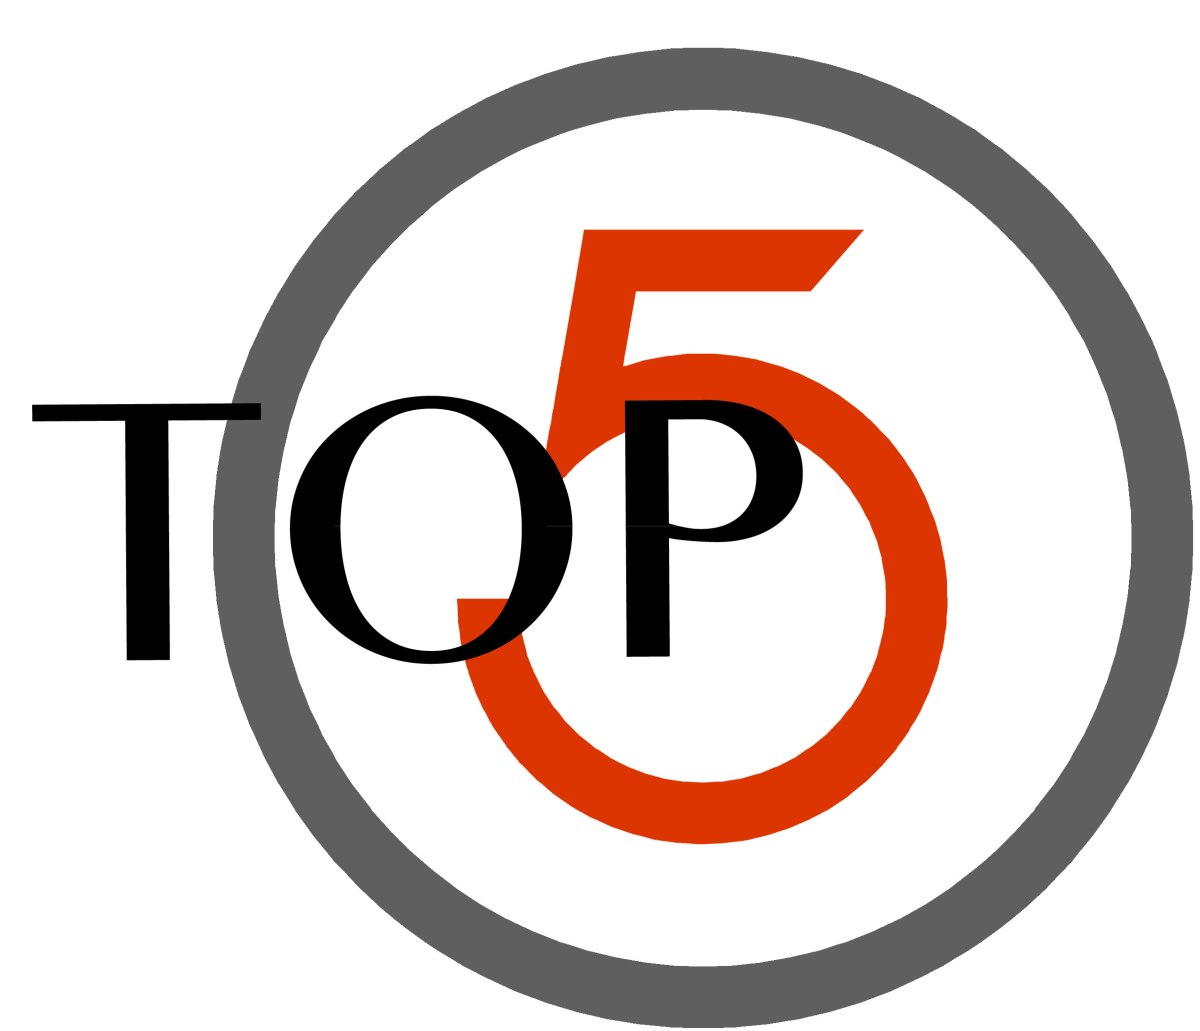 Top 5 – Abril 1, 2018